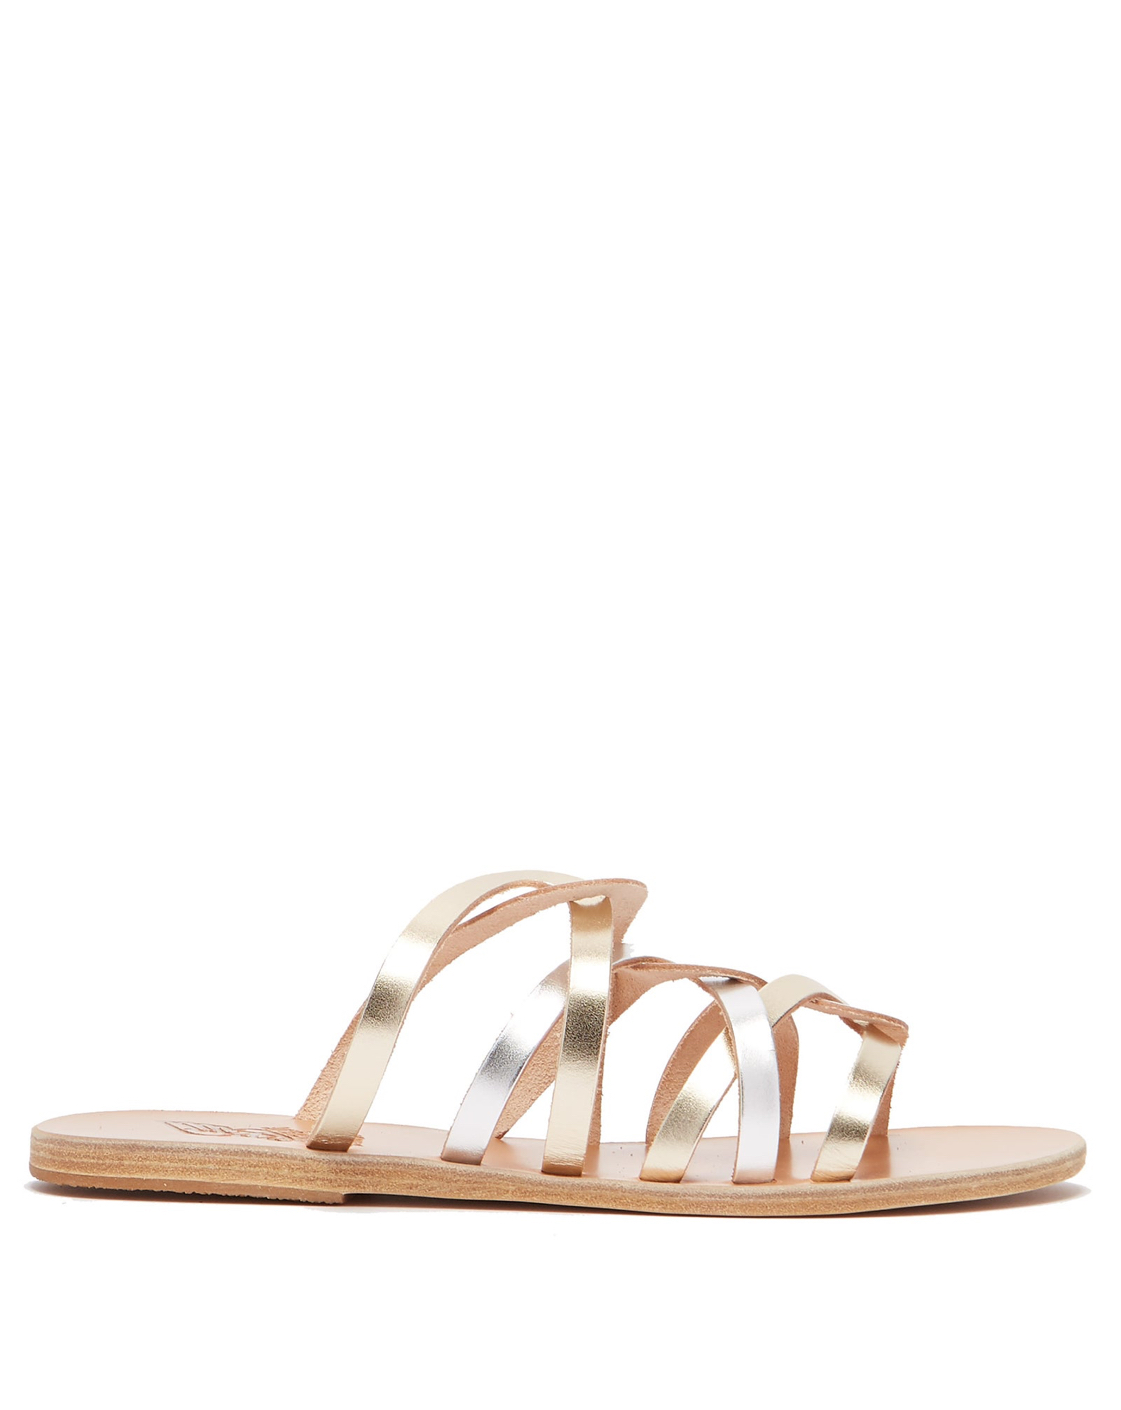 ANCIENT GREEK SANDALS Metallic Leather Sandals